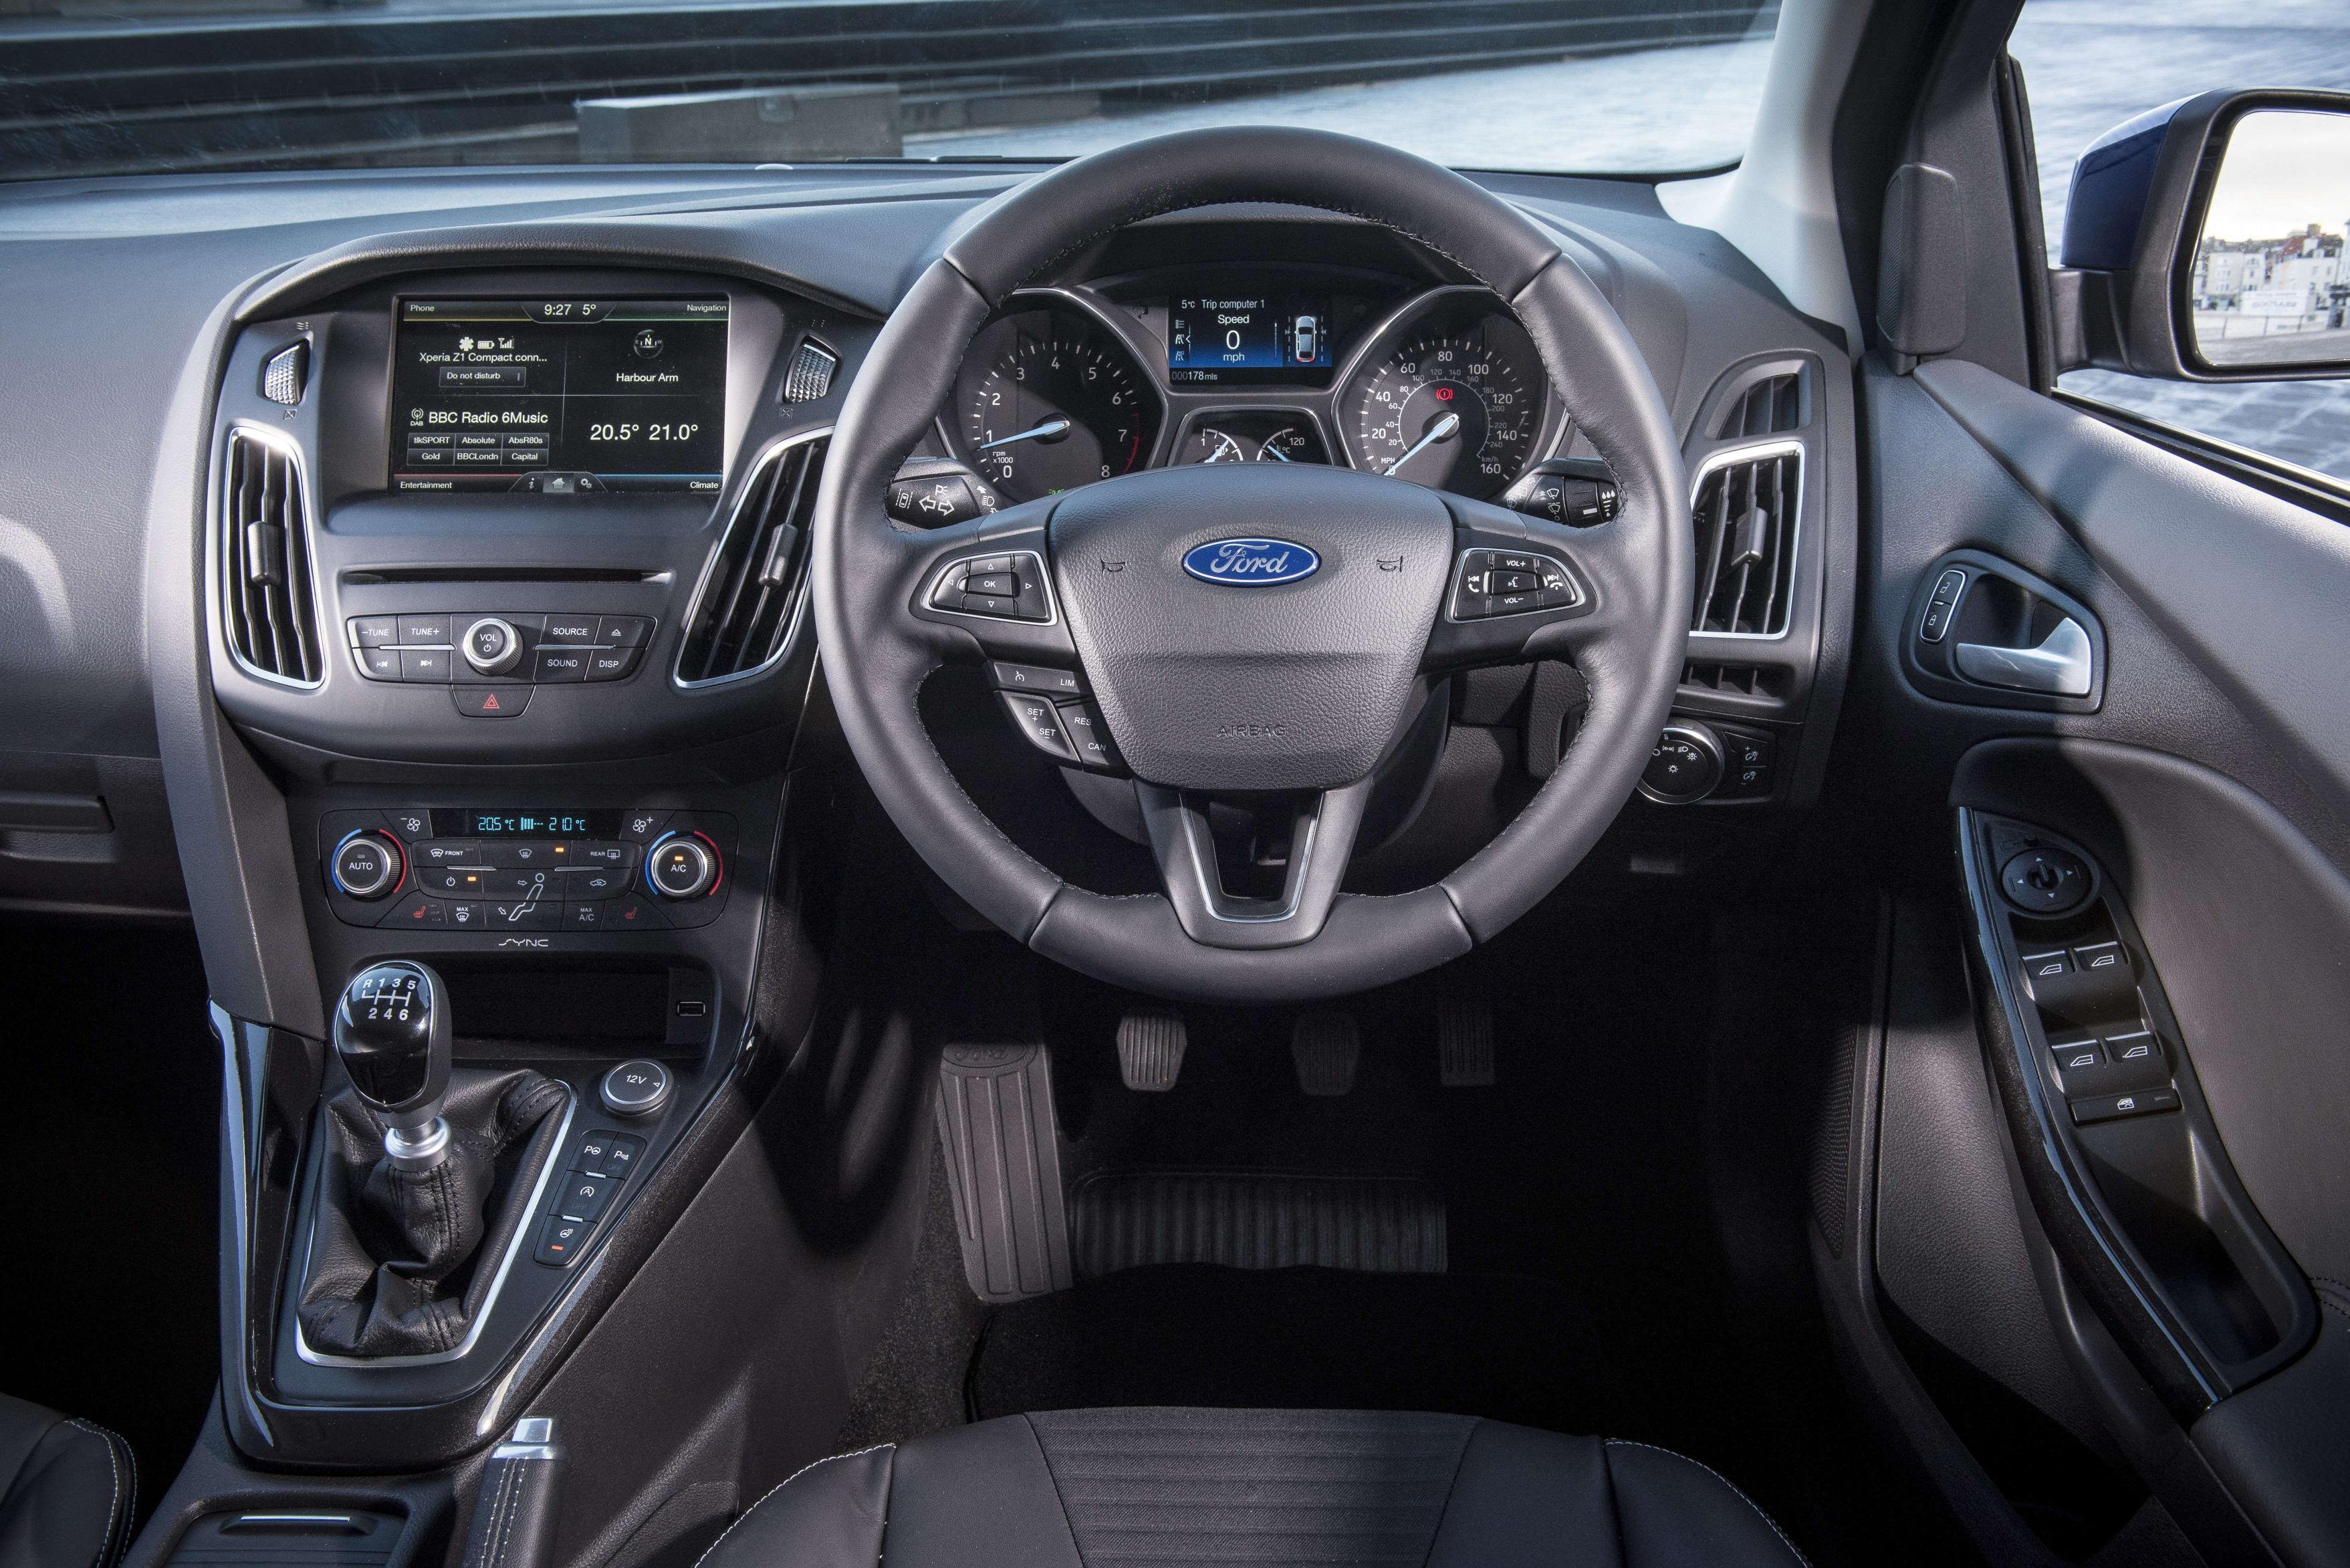 Used Ford Focus buying guide - Interior of a Ford Focus